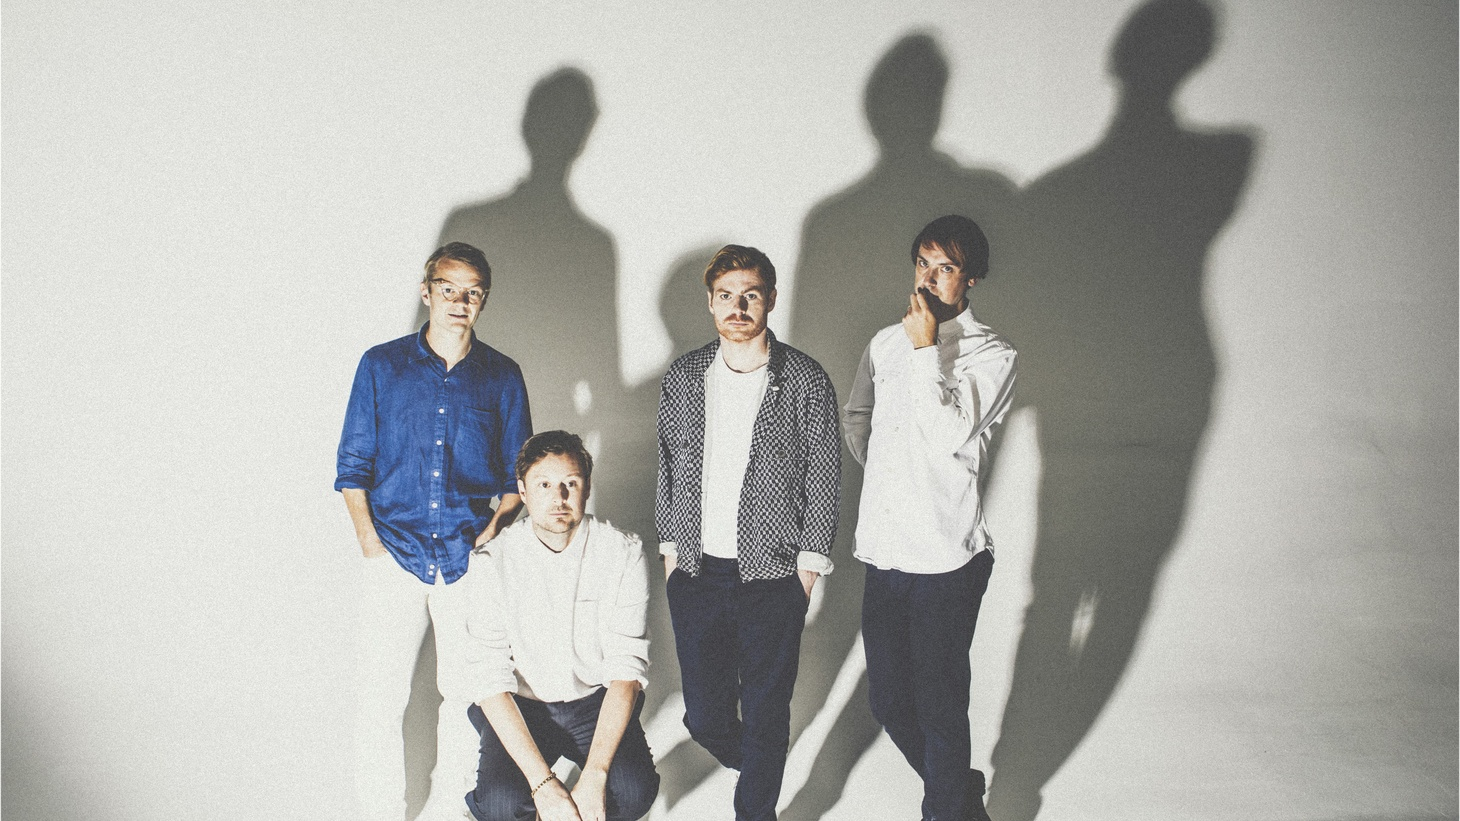 UK art rock band Django Django take a turn towards pop on their 3rd album, Marble Skies. It's their most confident release to date, and KCRW is excited to have them back in our studio for a live set.